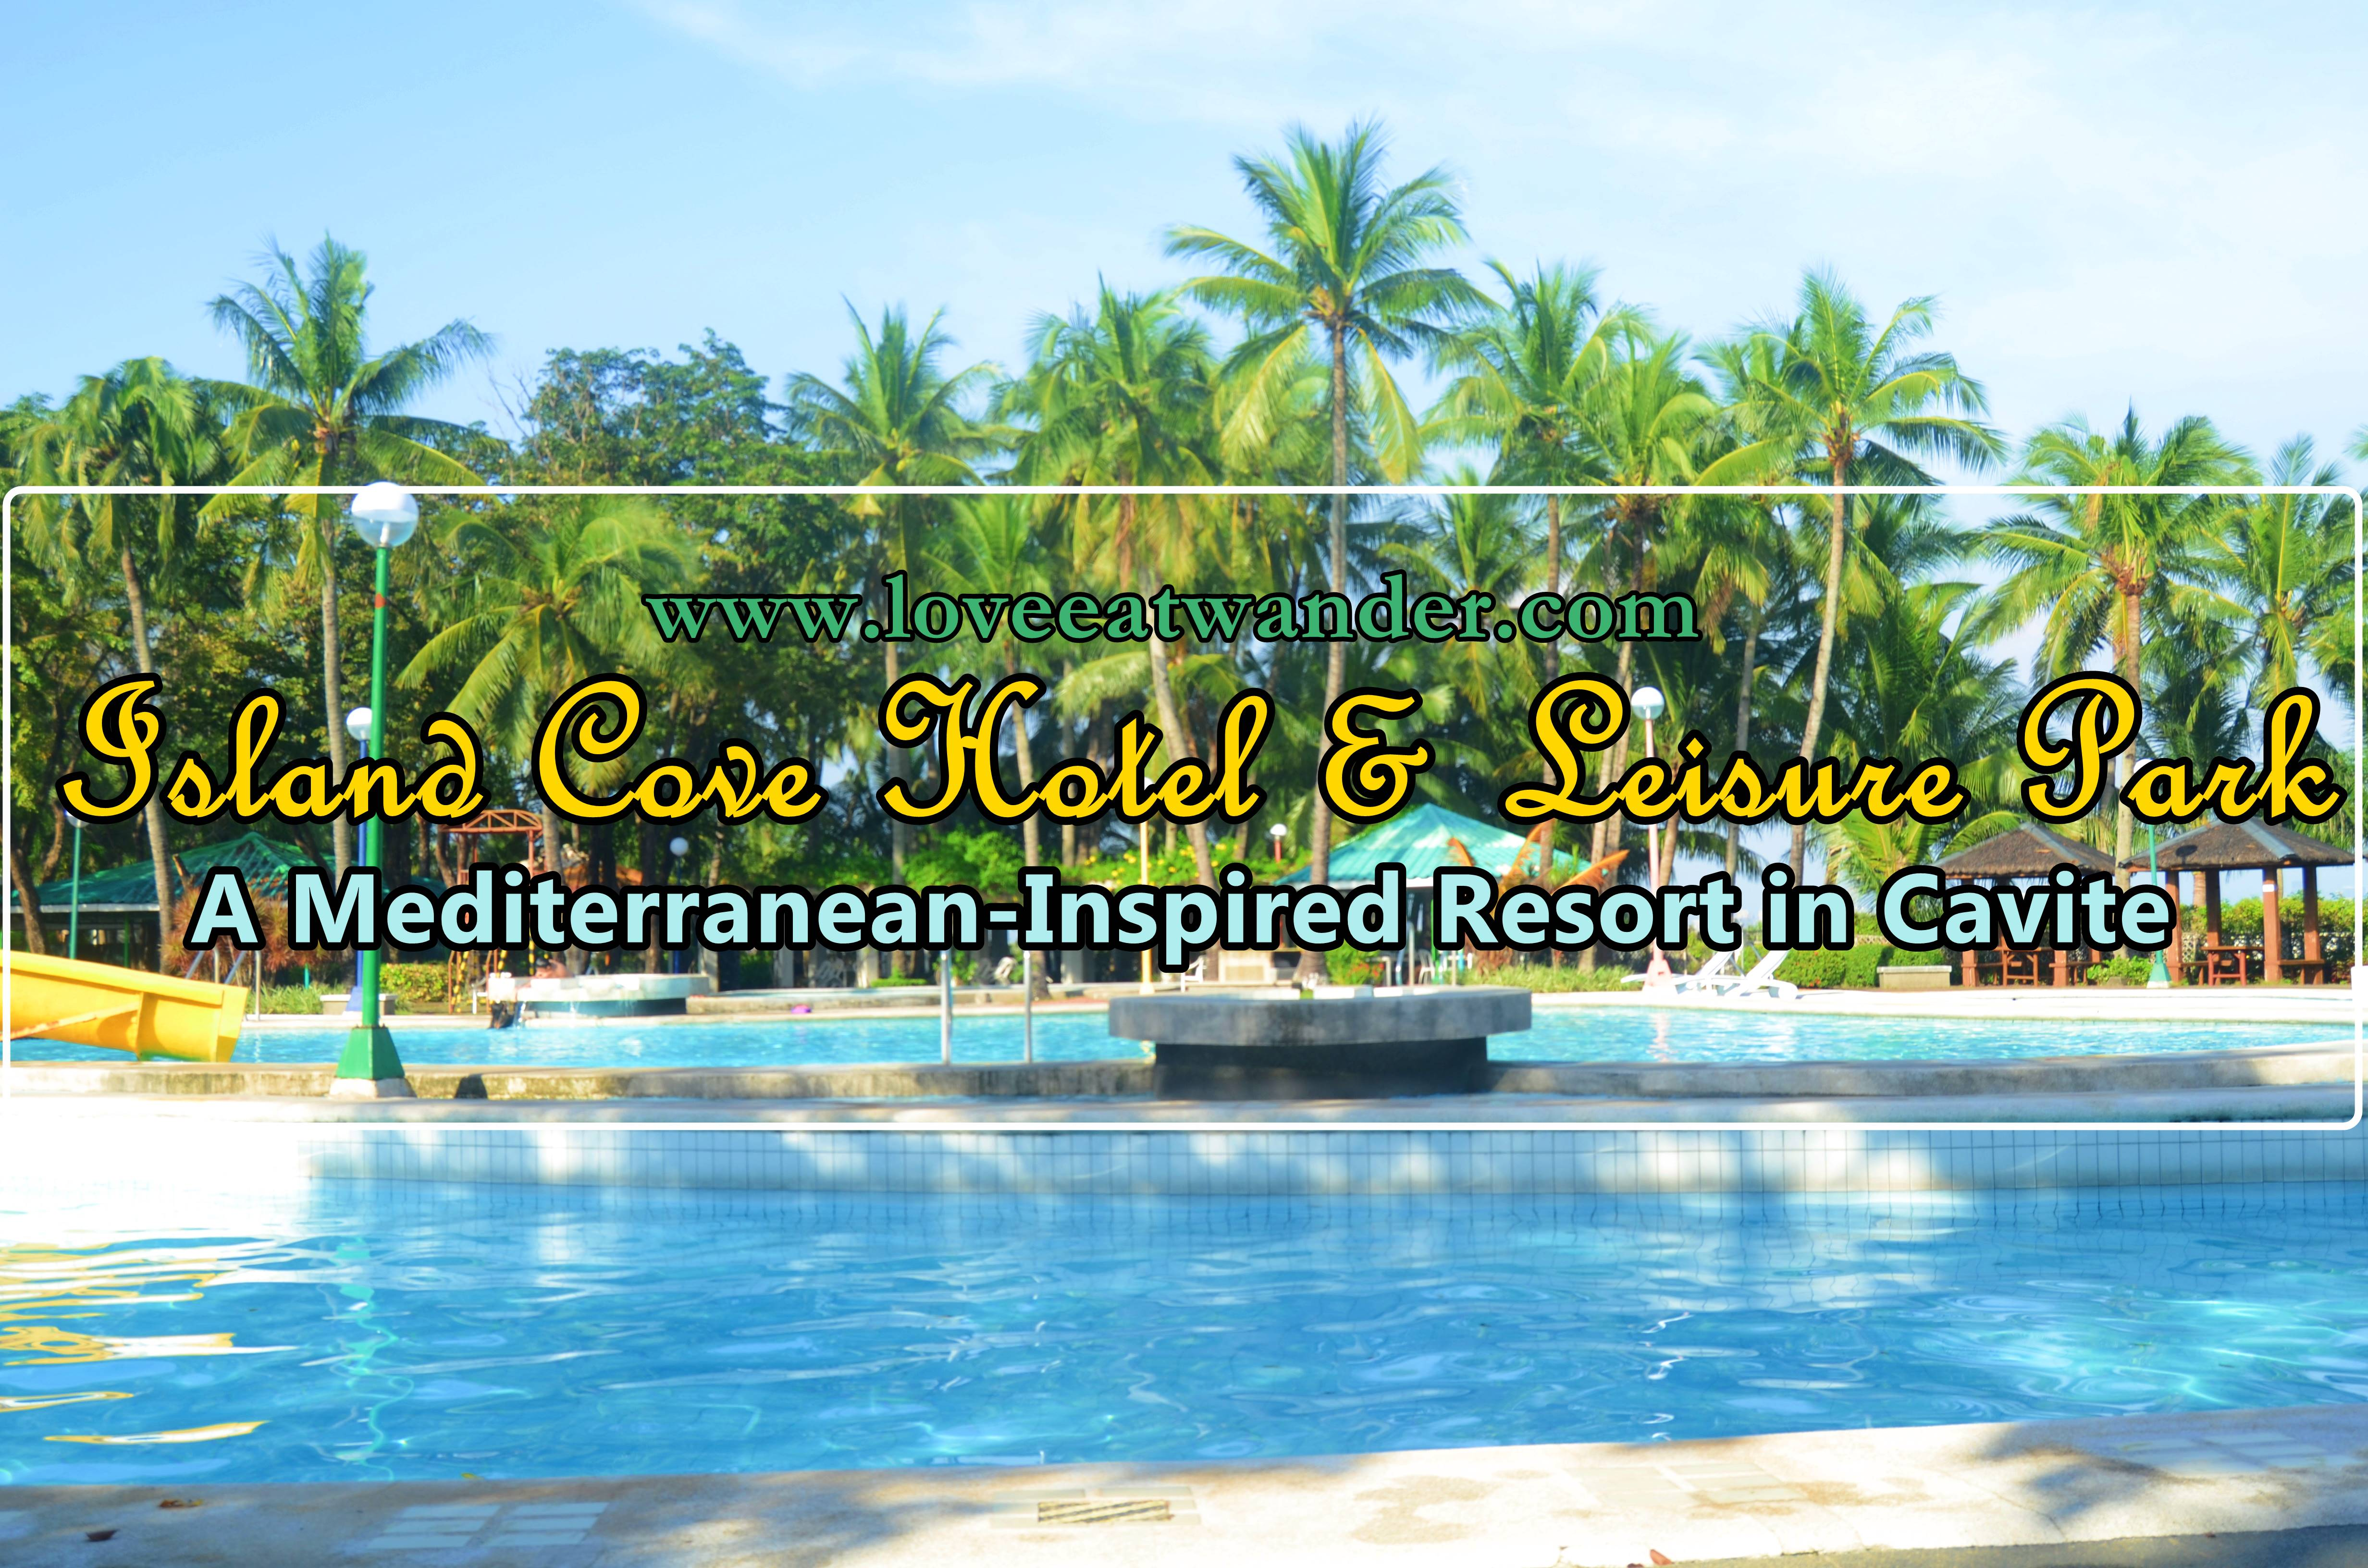 Island Cove Hotel And Leisure Park Kawit Philippines